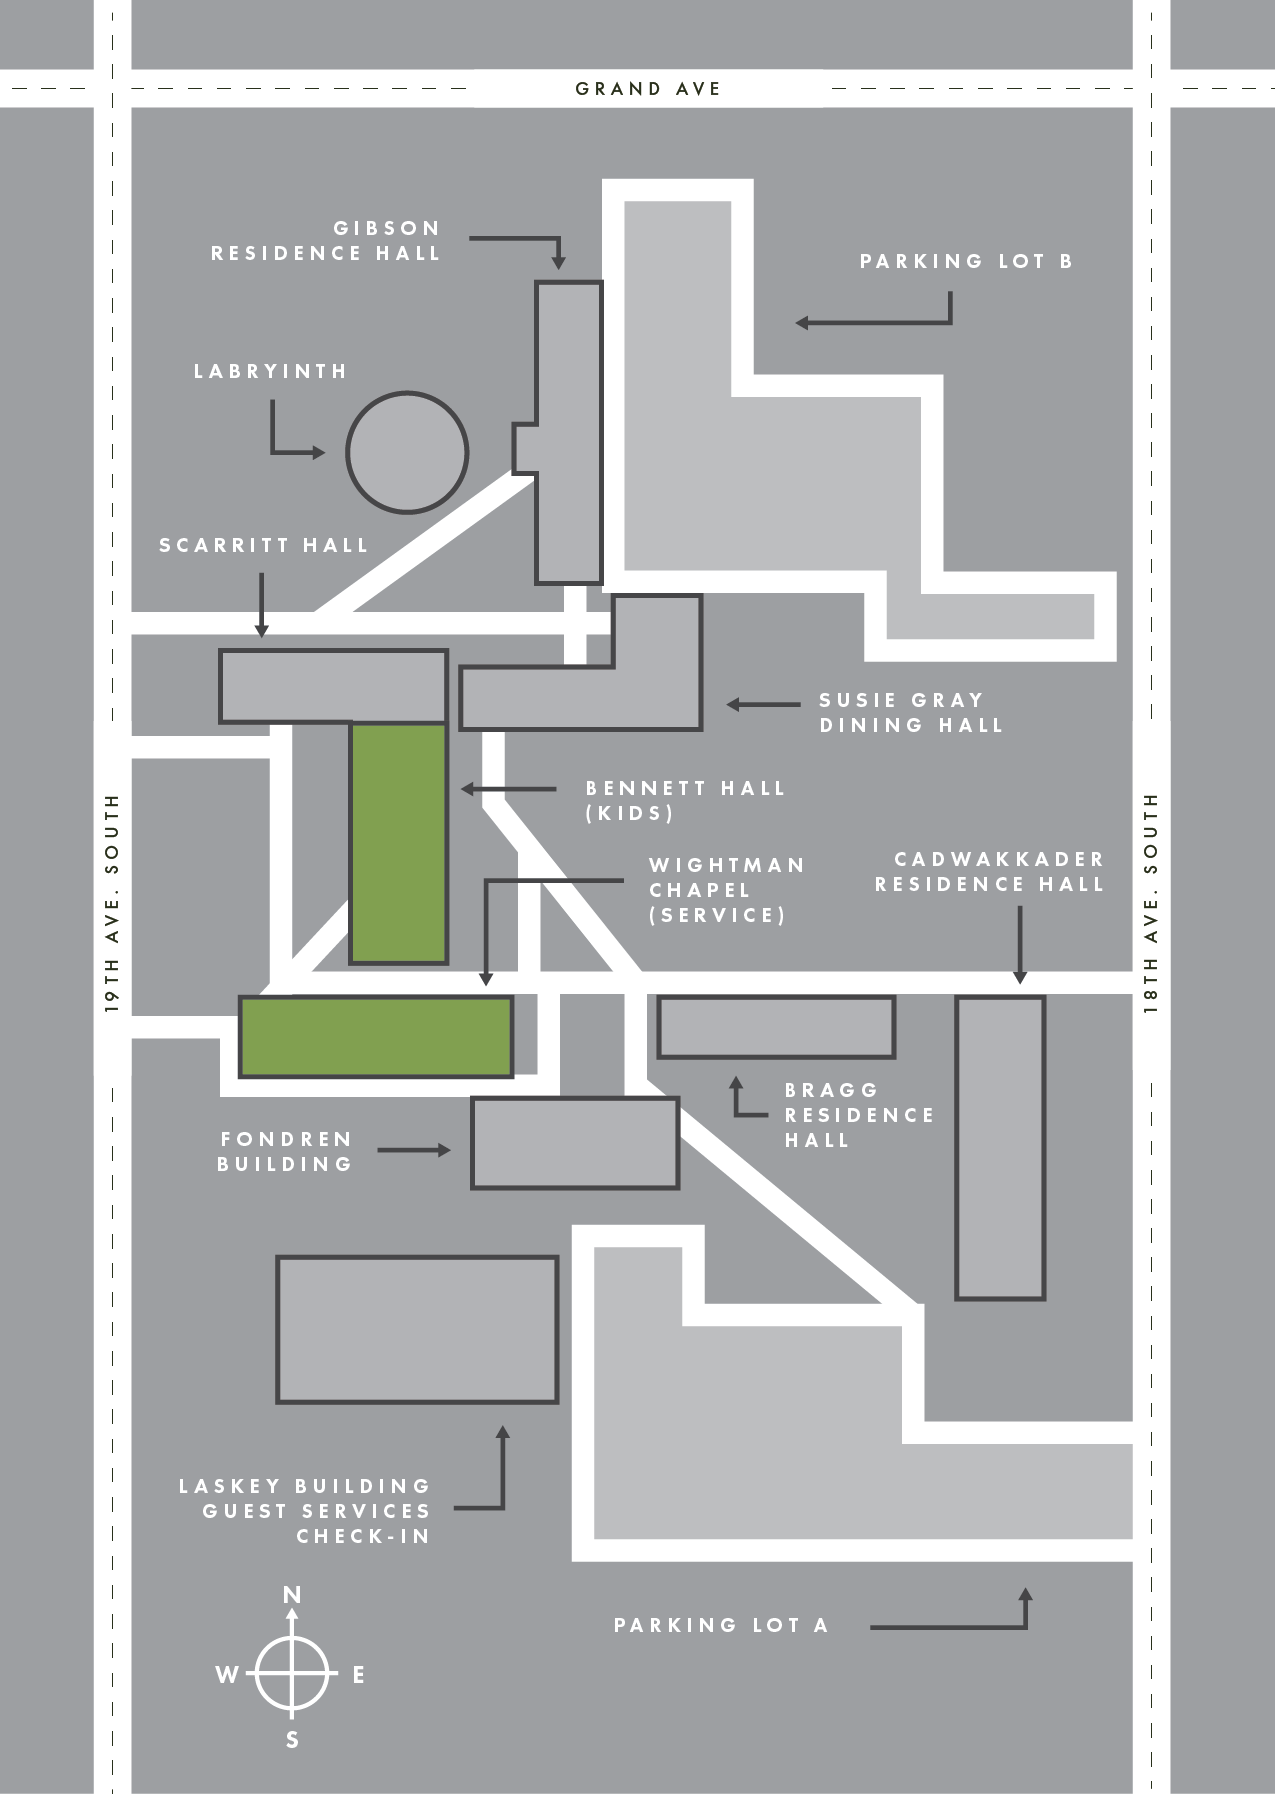 Intown_Map-01.png